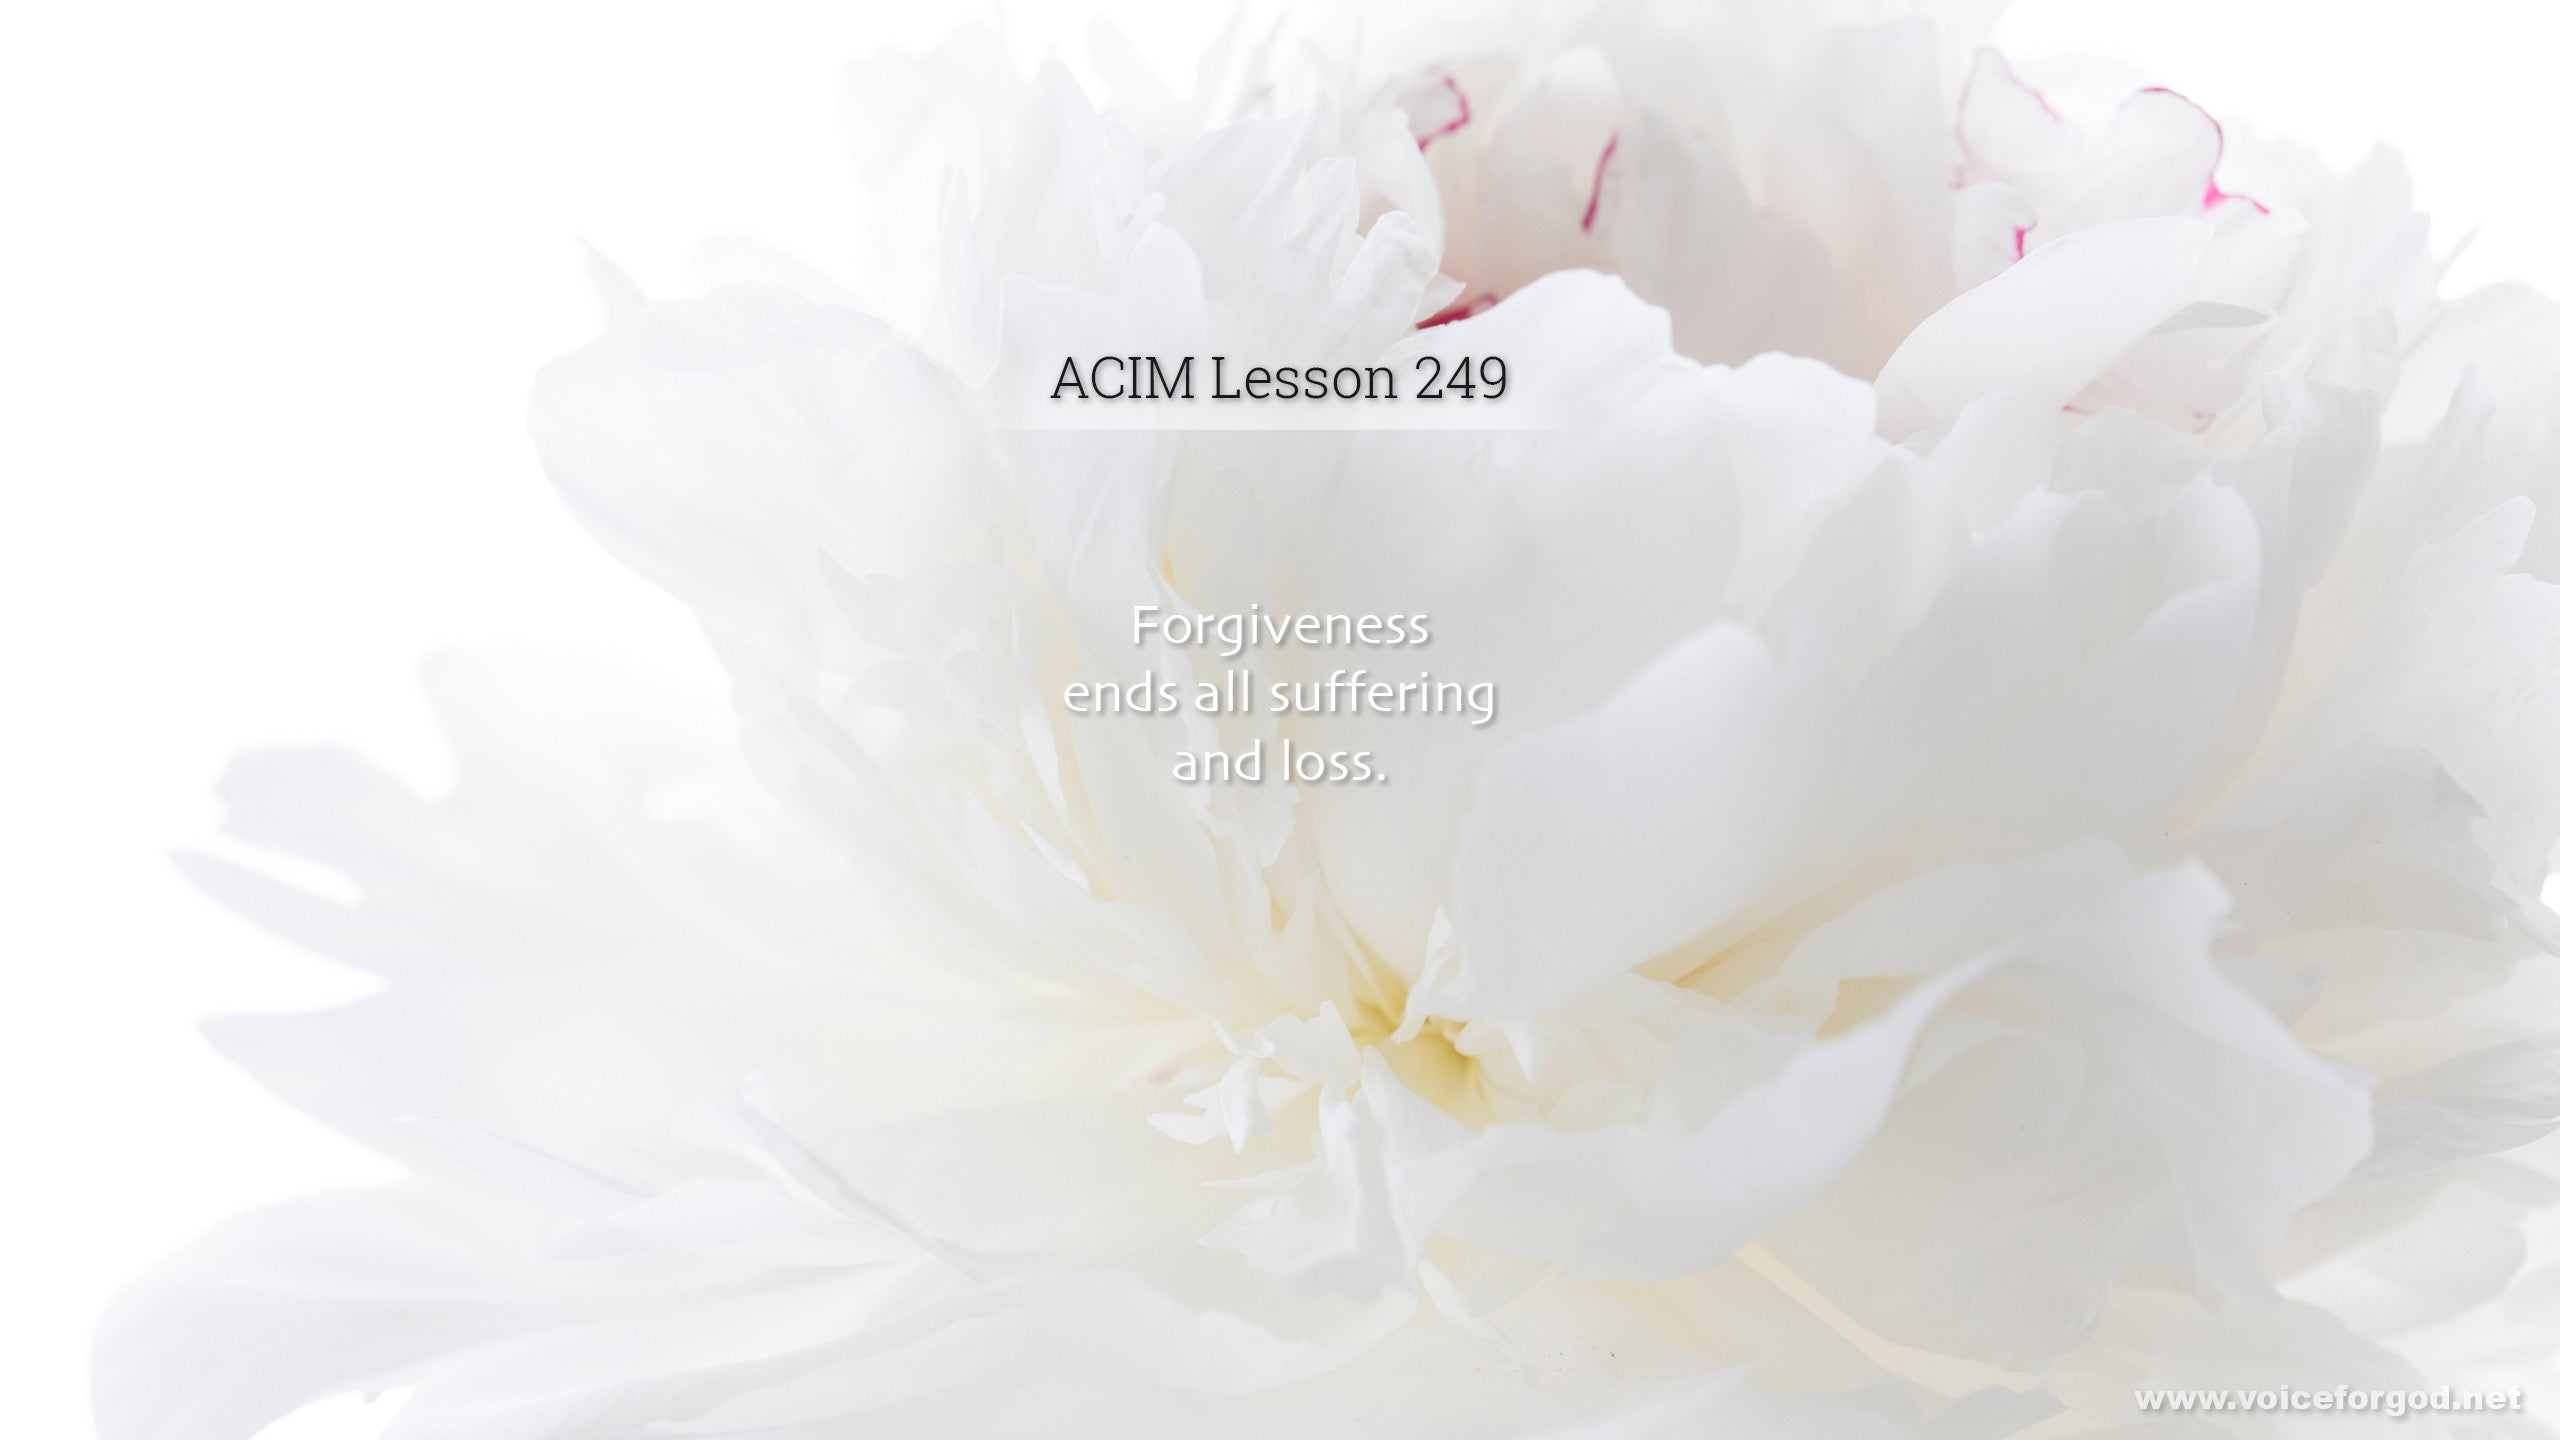 ACIM Lesson 249 - A Course in Miracles Workbook Lesson 249